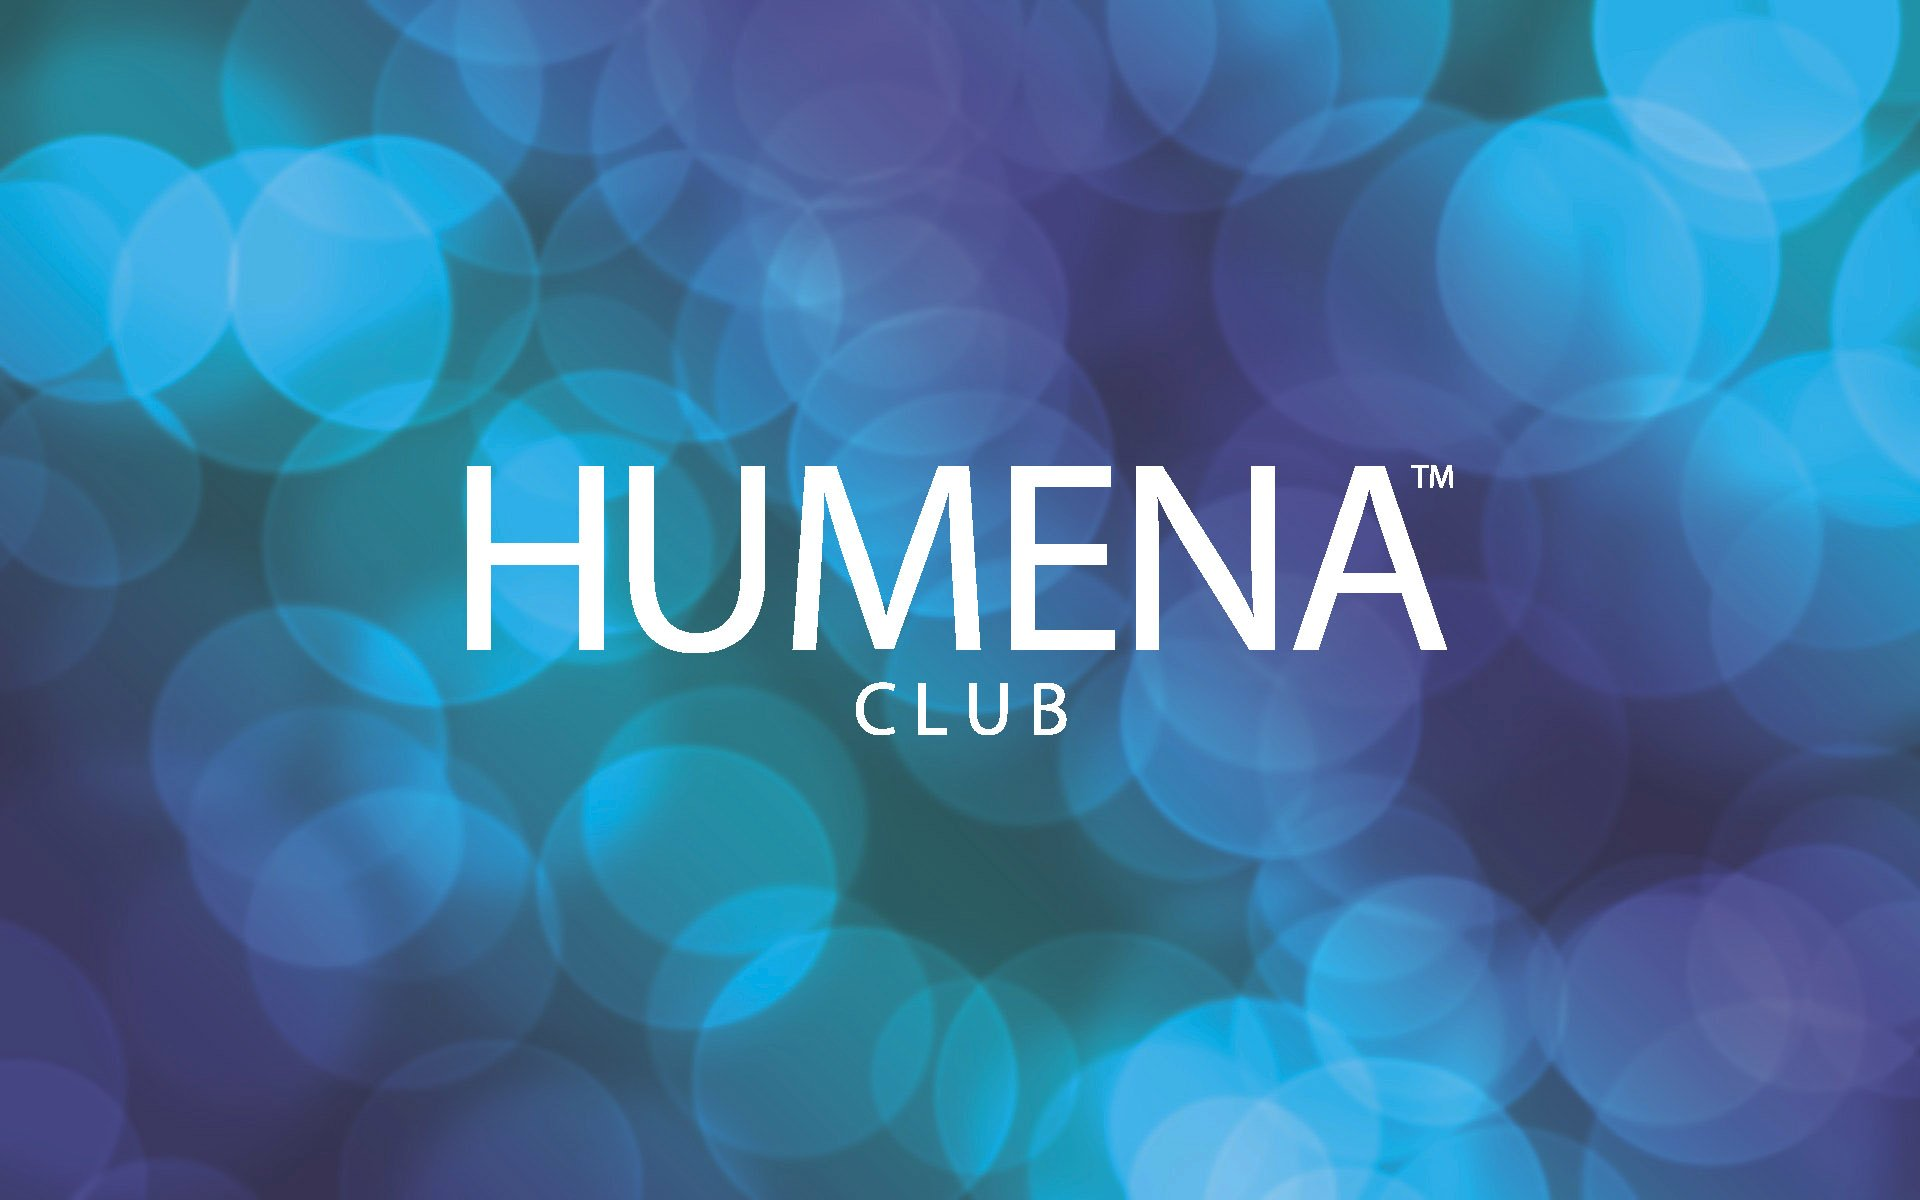 Humena™ Launches Revolutionary ICO Backed by Unified Crypto Ecosystem That Will Enable the Safe, Transparent & Easy Use of Tokens in Any ICO Platform